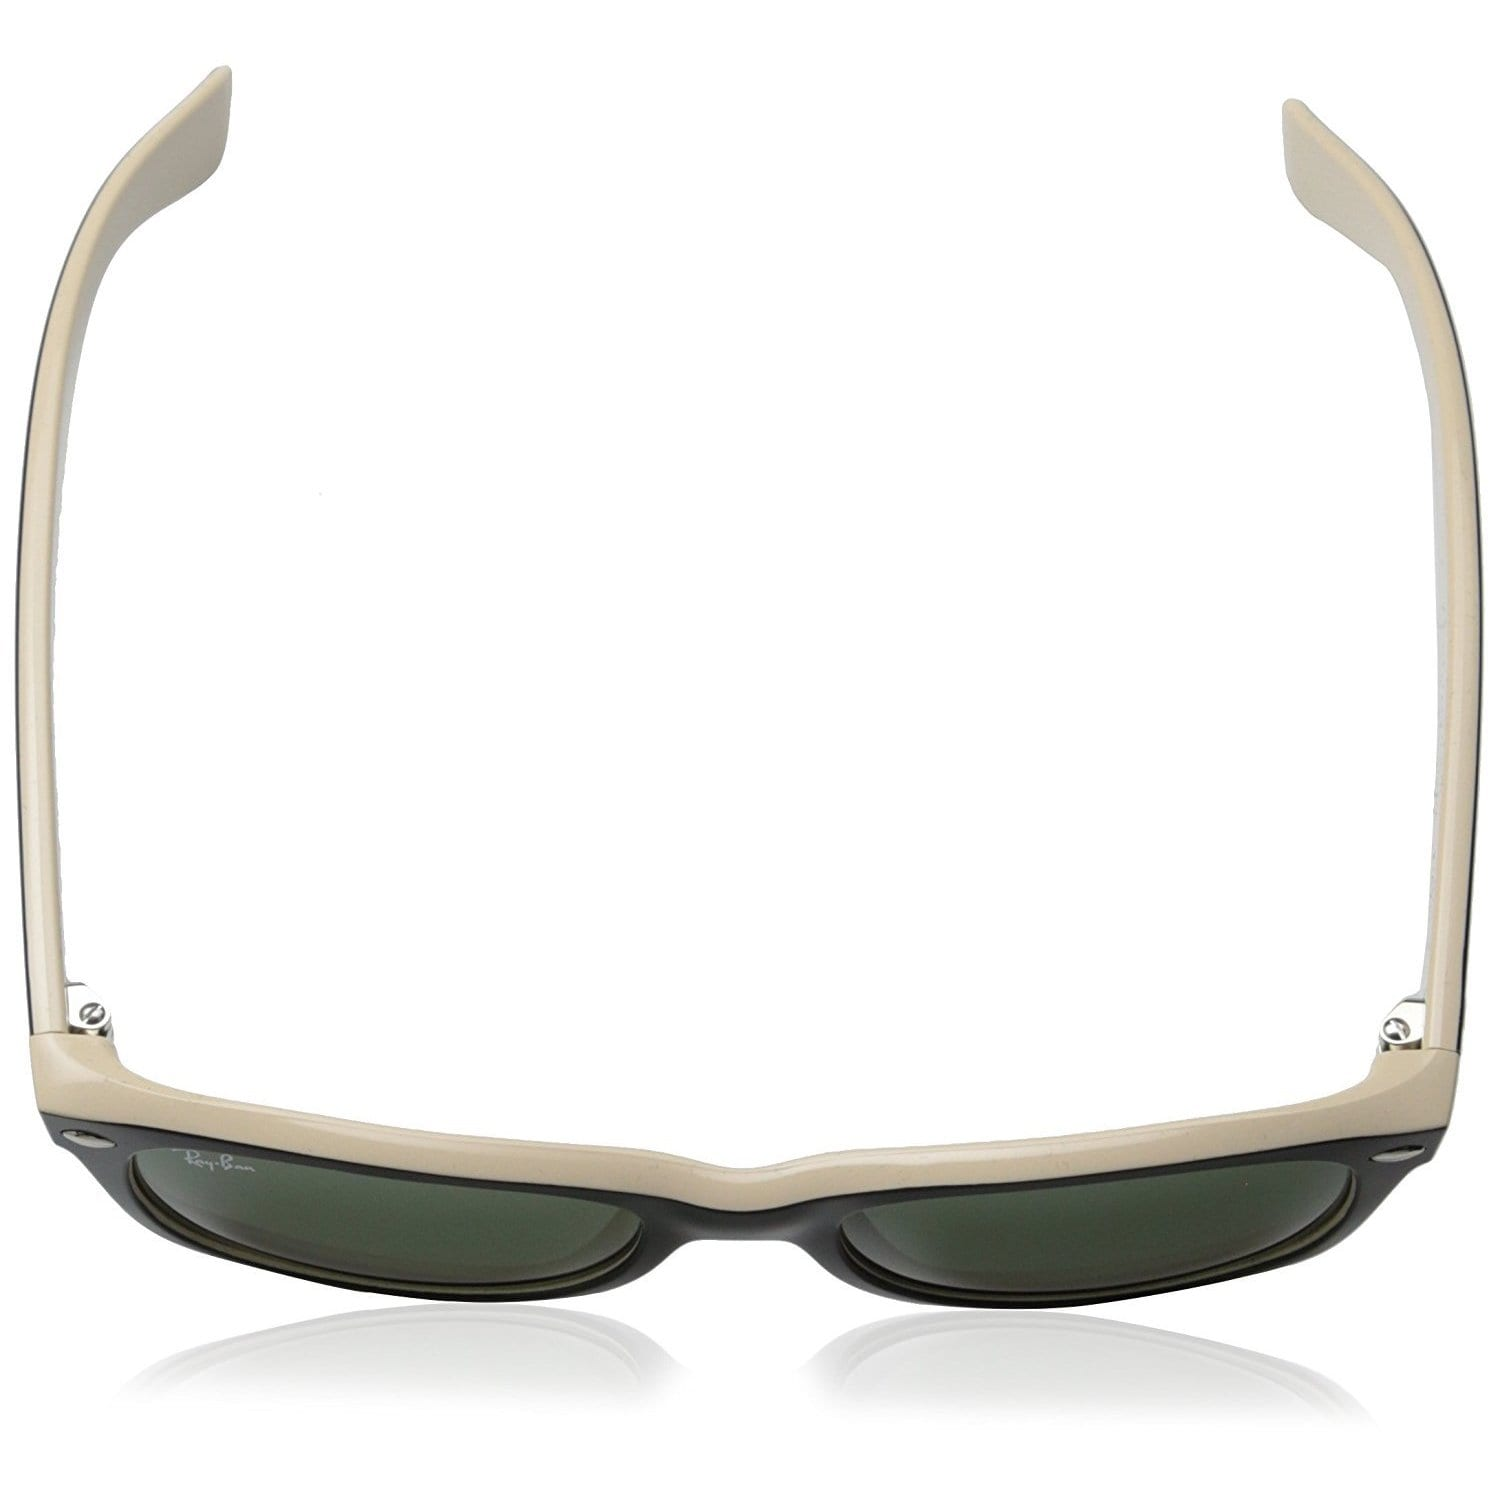 Shop Ray-Ban RB2132 875 New Wayfarer Color Mix Black Light Brown Frame  Green Classic 55mm Lens Sunglasses - Free Shipping Today - Overstock -  14442378 8a7bef98b66